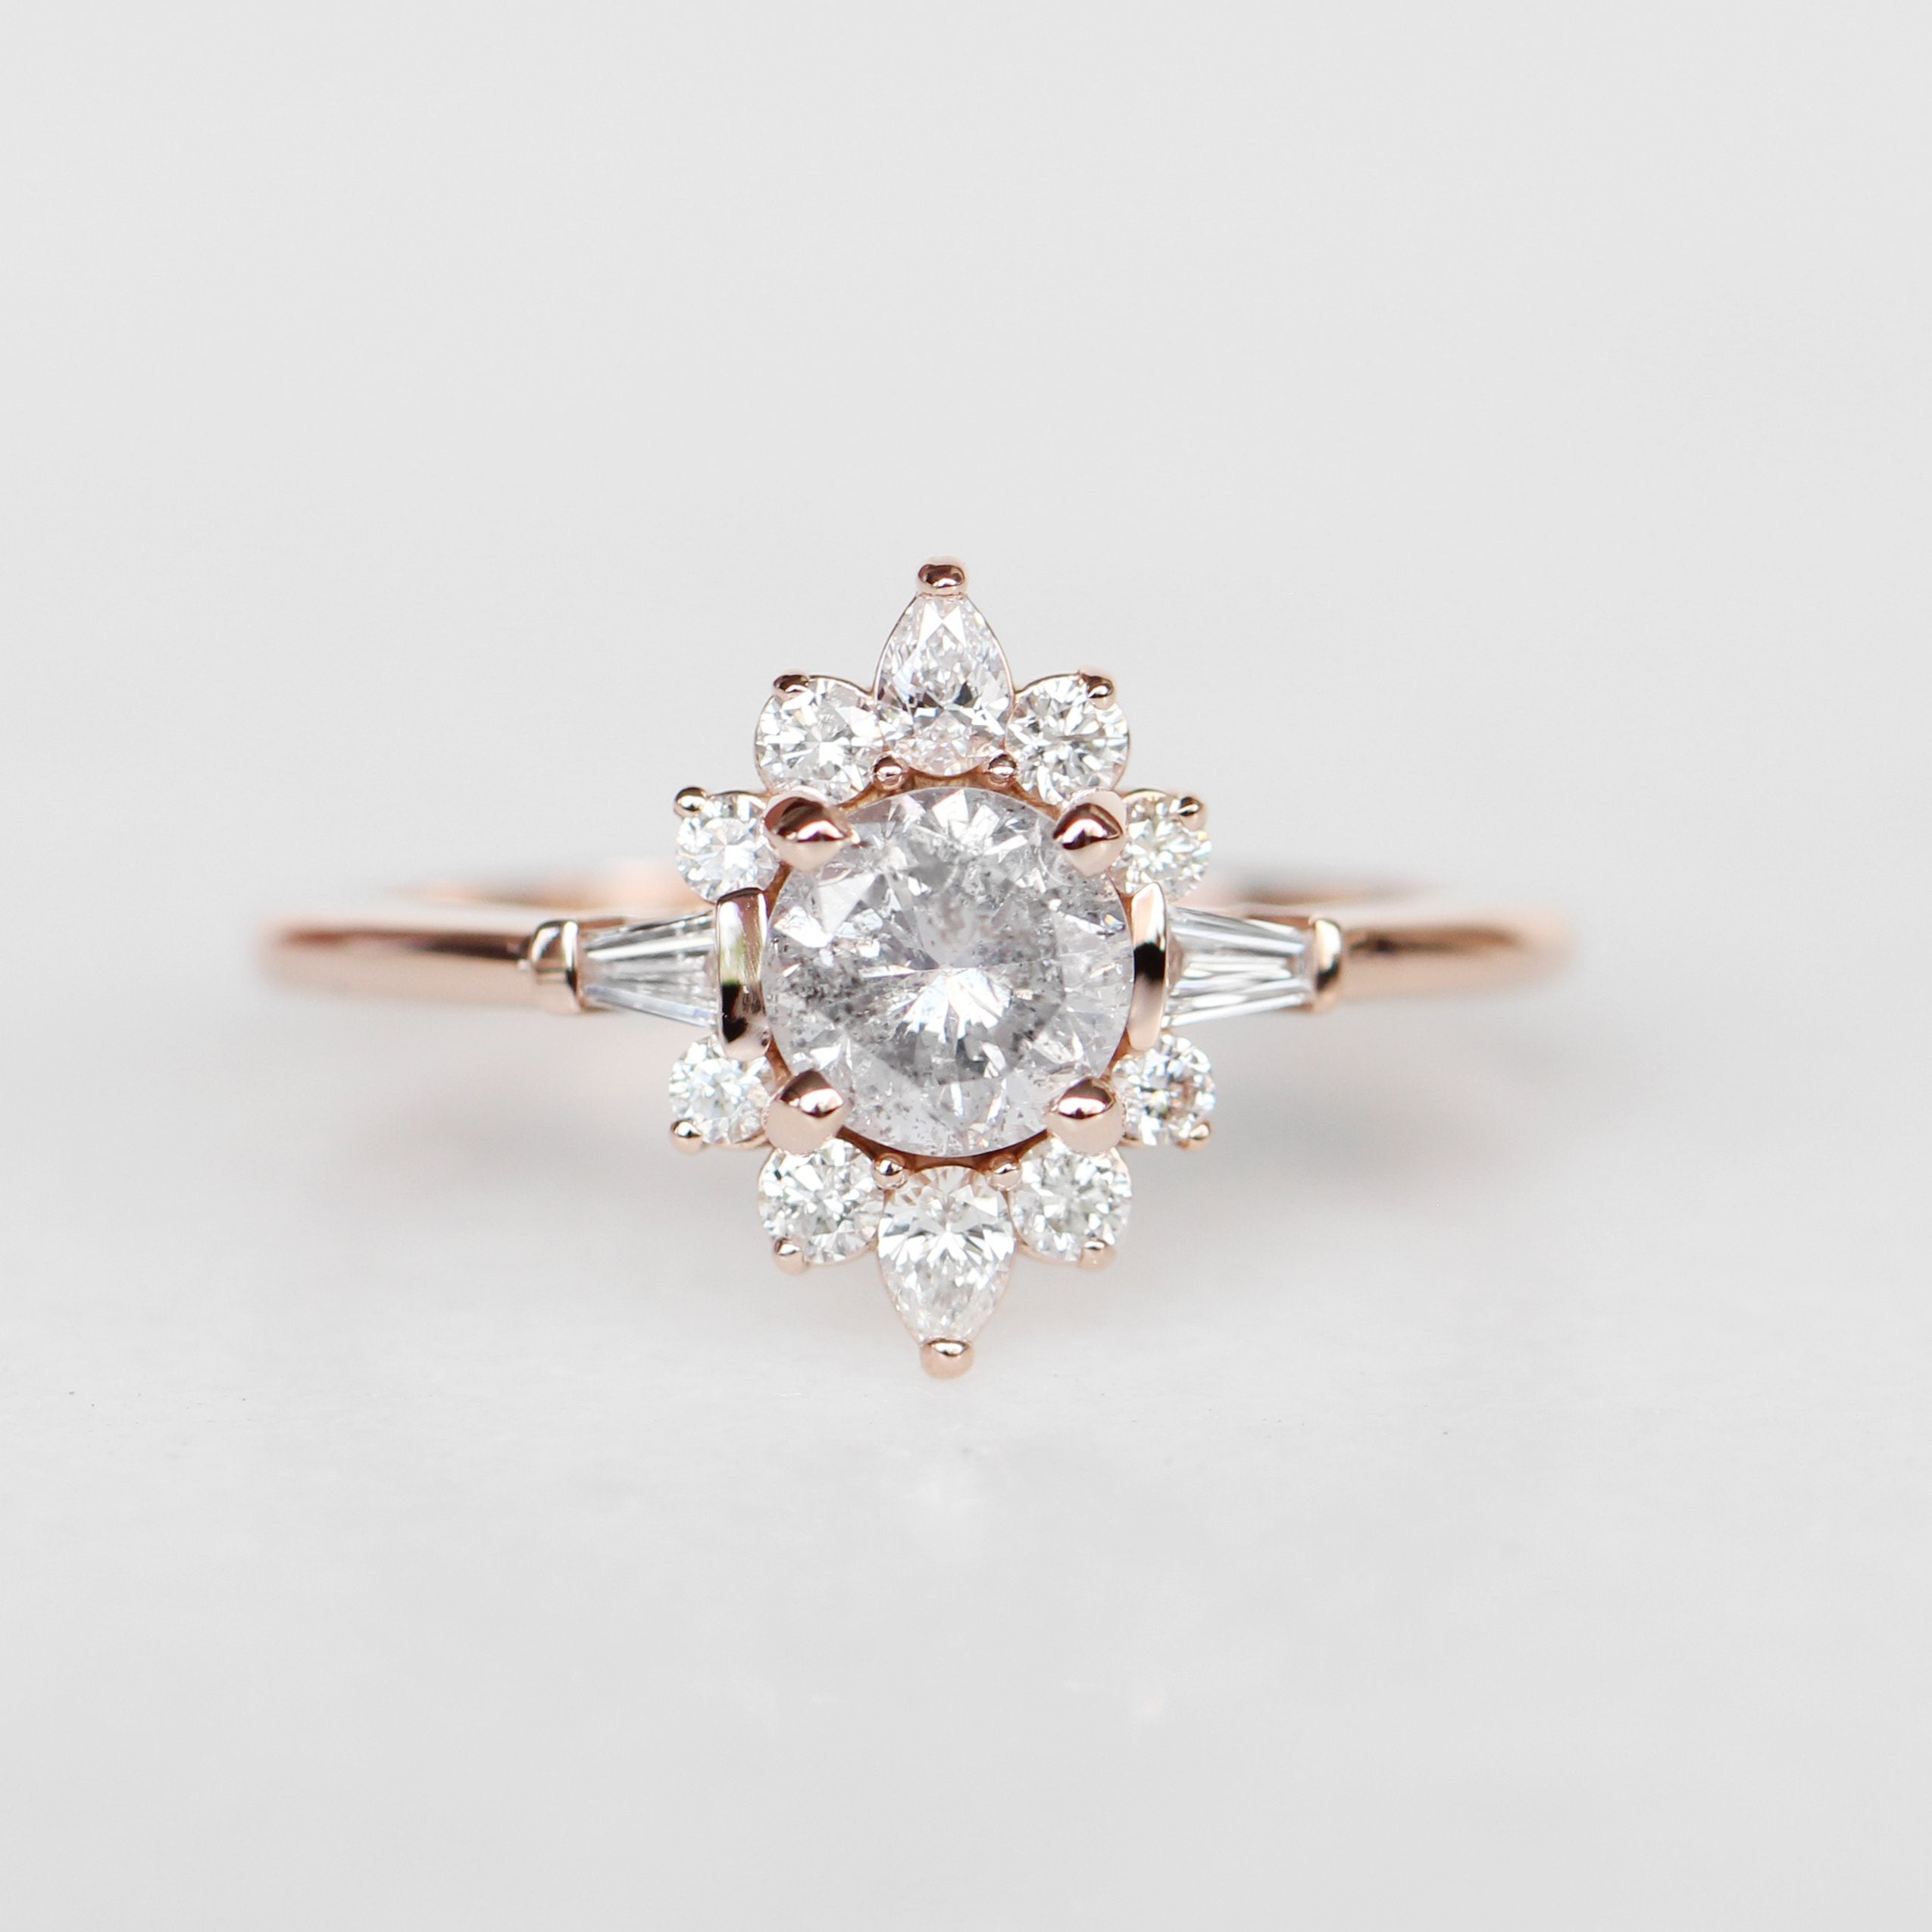 Atlas Setting - Salt & Pepper Celestial Diamond Engagement Rings and Wedding Bands  by Midwinter Co.